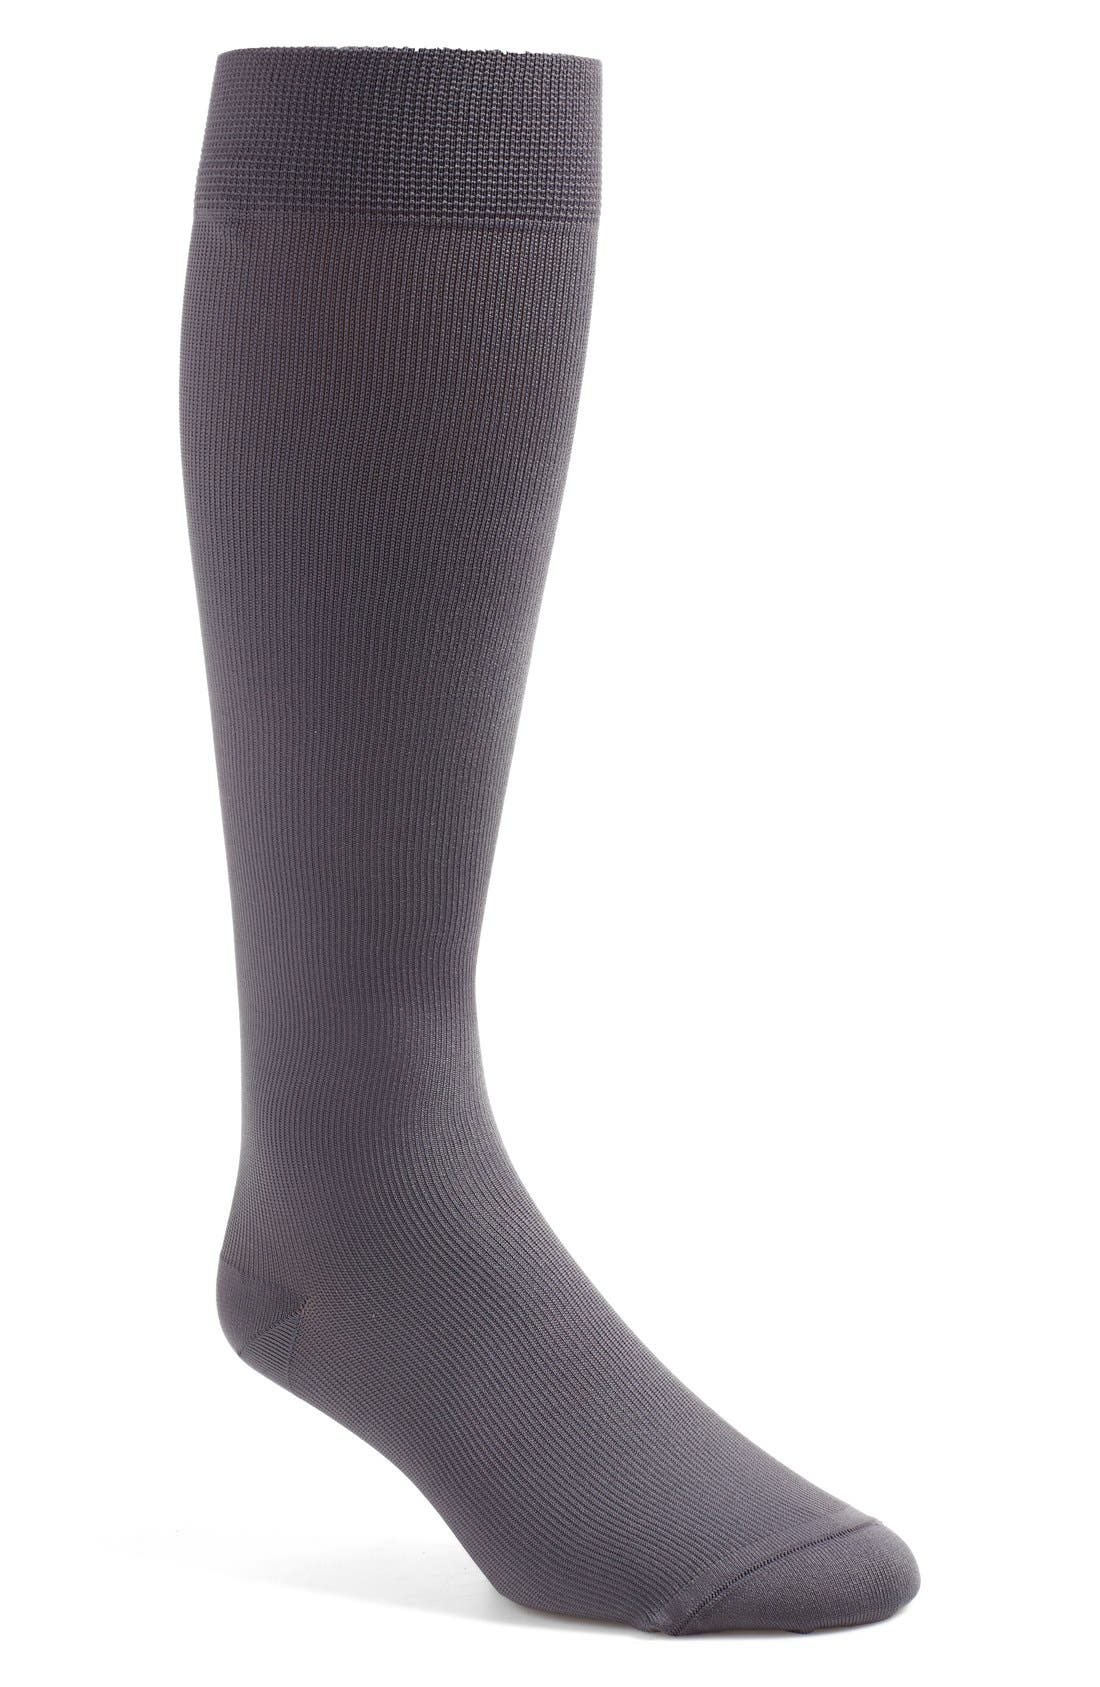 'Keynote' Over the Calf Socks,                         Main,                         color, Grey